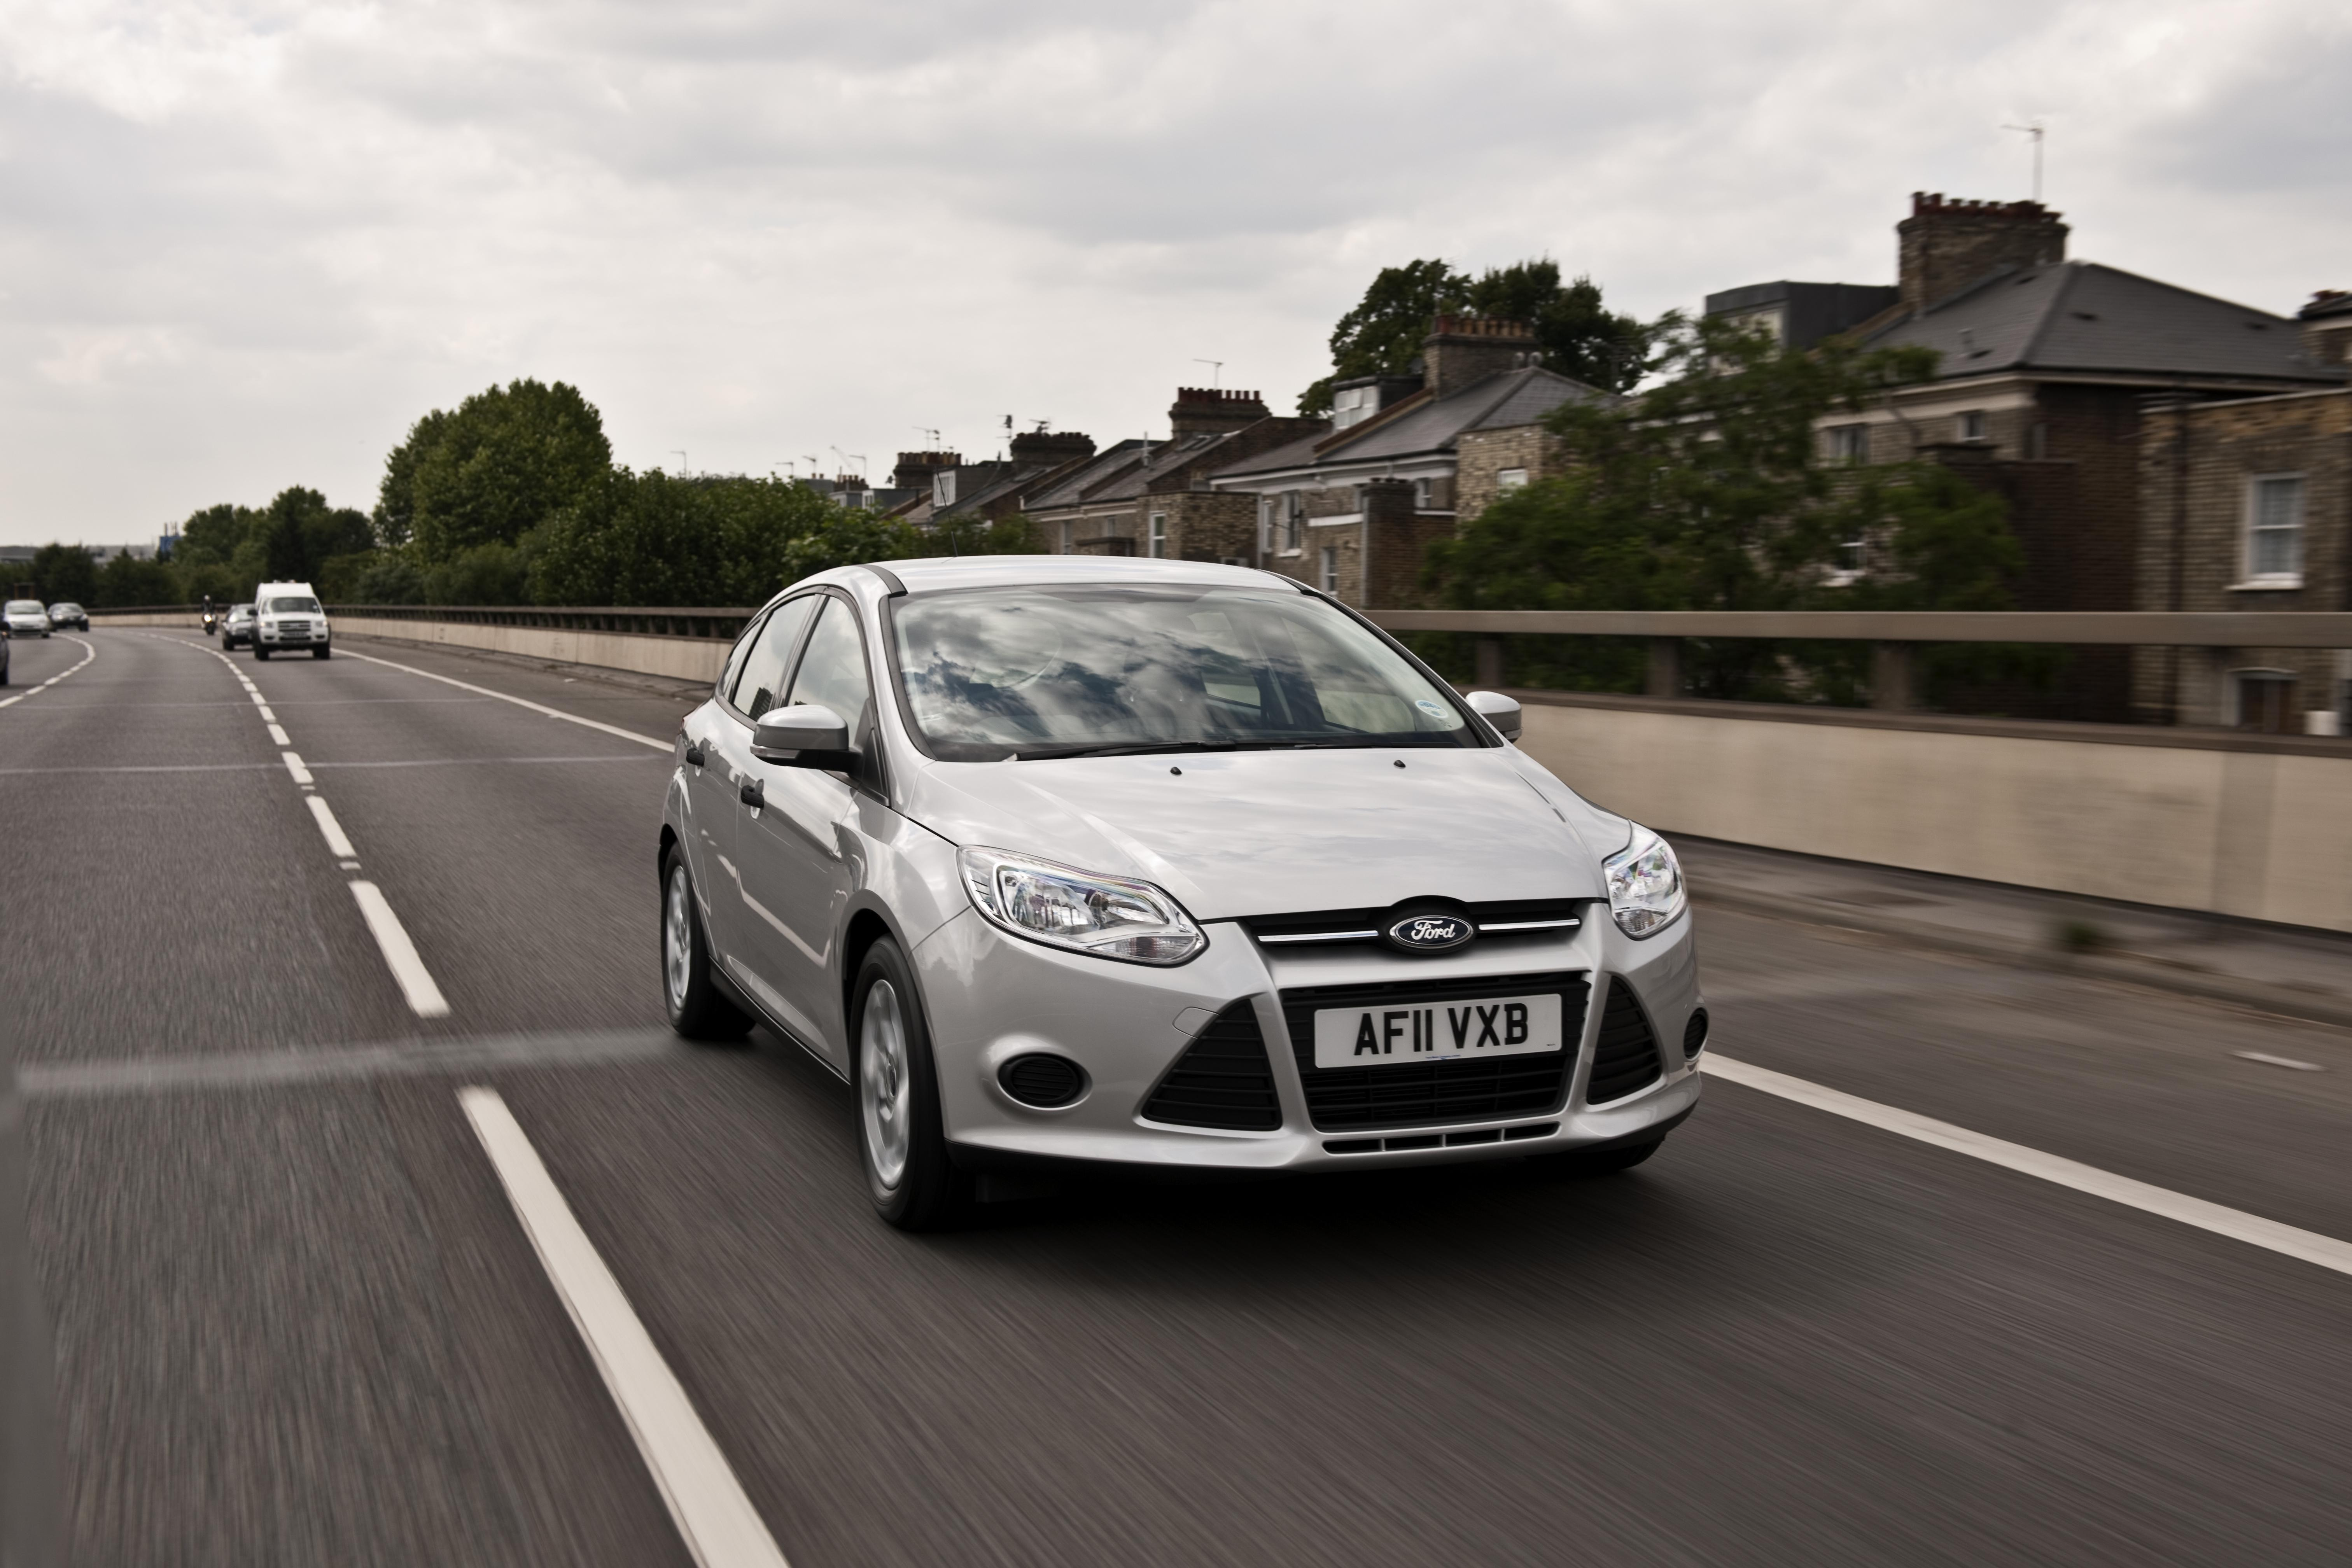 2011 Ford Focus Studio 1